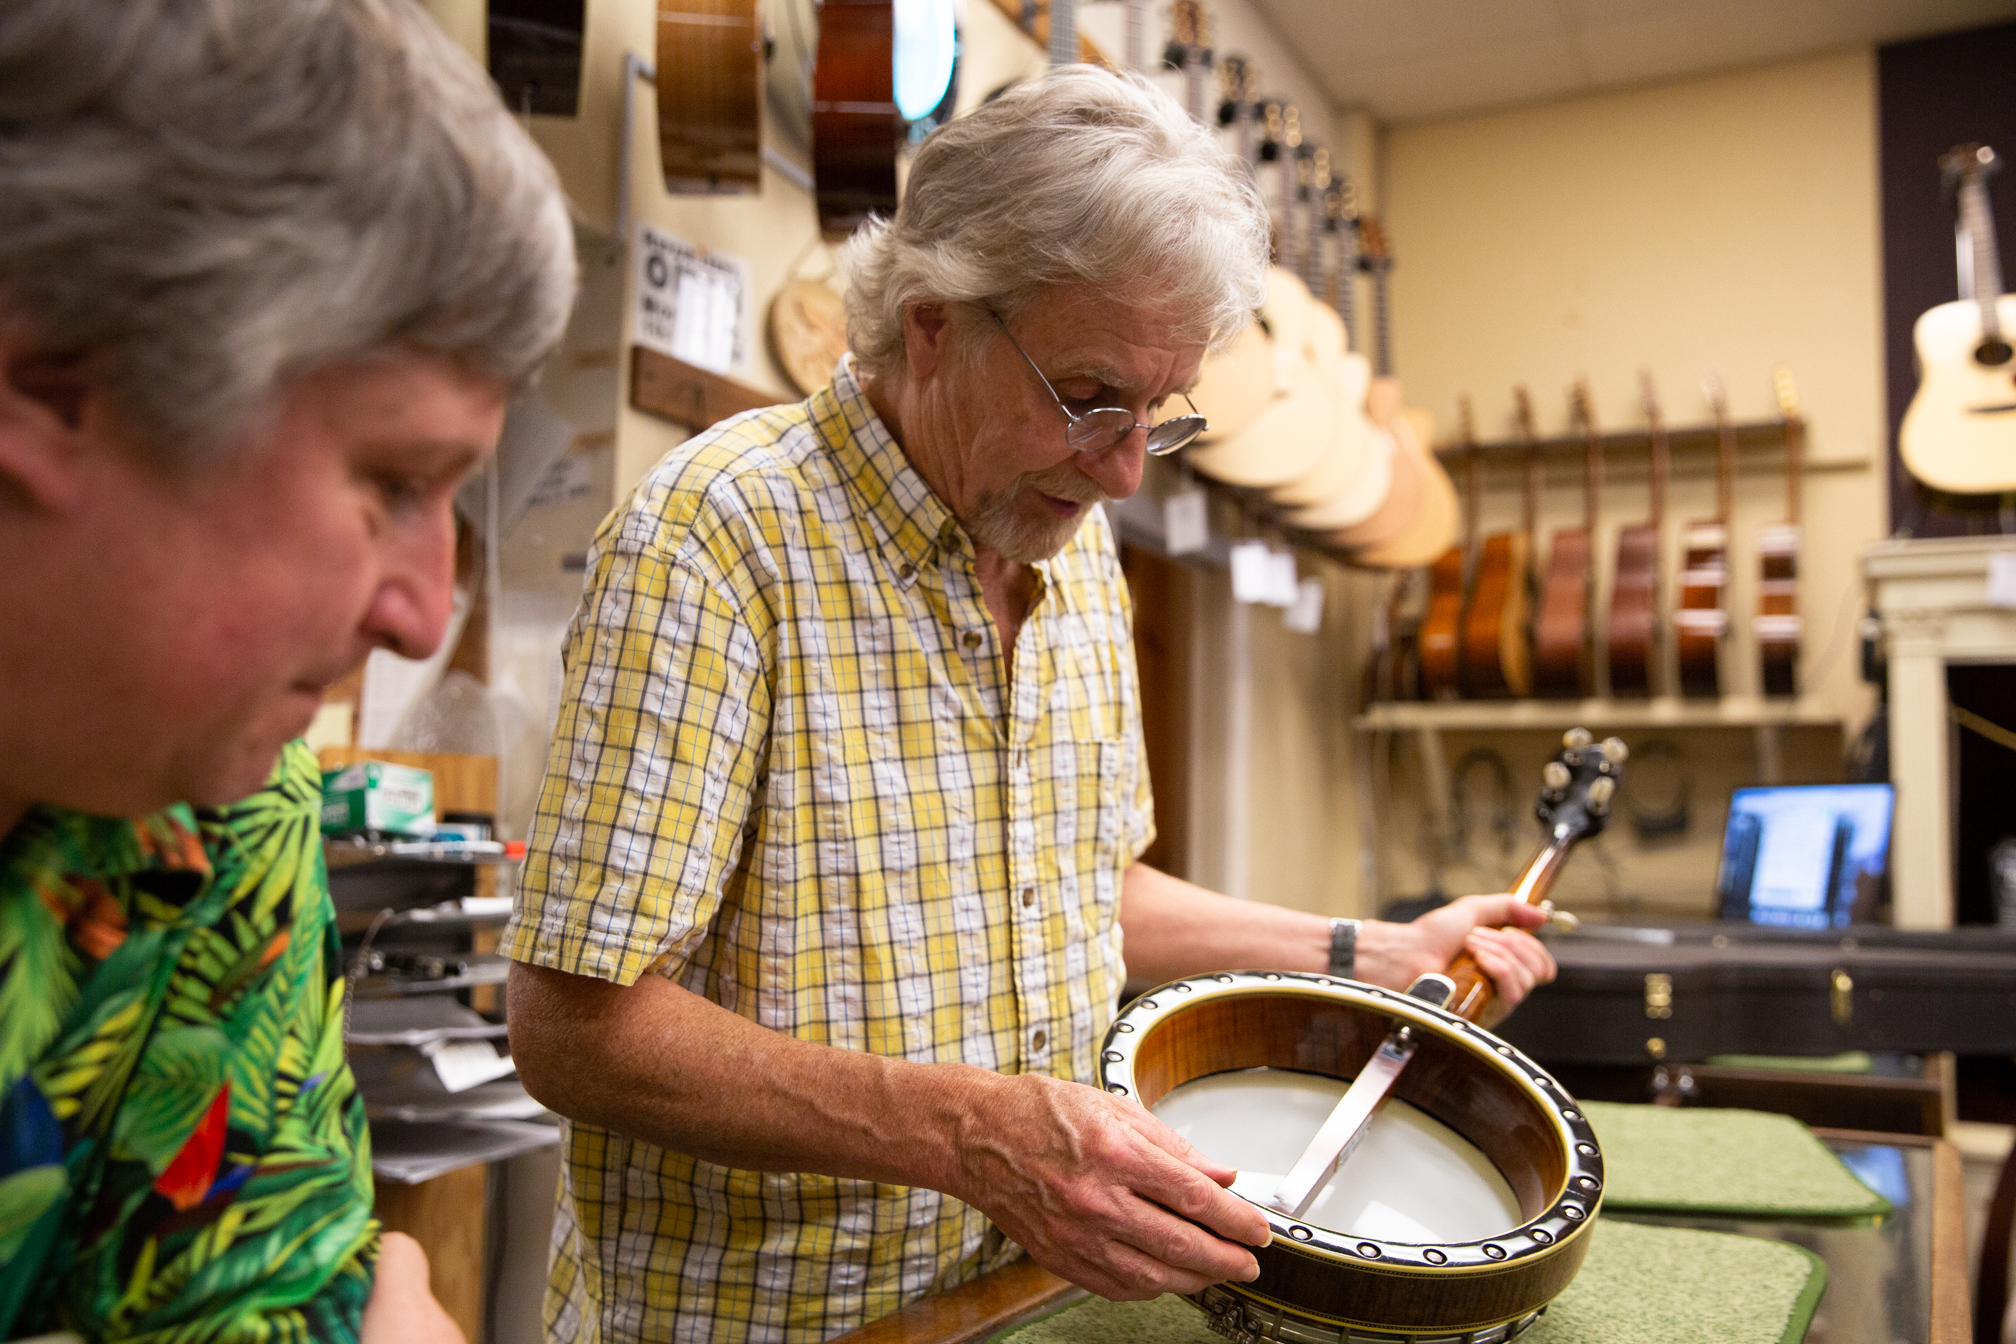 Richard Johnston, center, co-owner of Gryphon Stringed Instruments, takes a look at a banjo he and fellow co-owner Frank Ford made together in their Lambert Avenue shop.